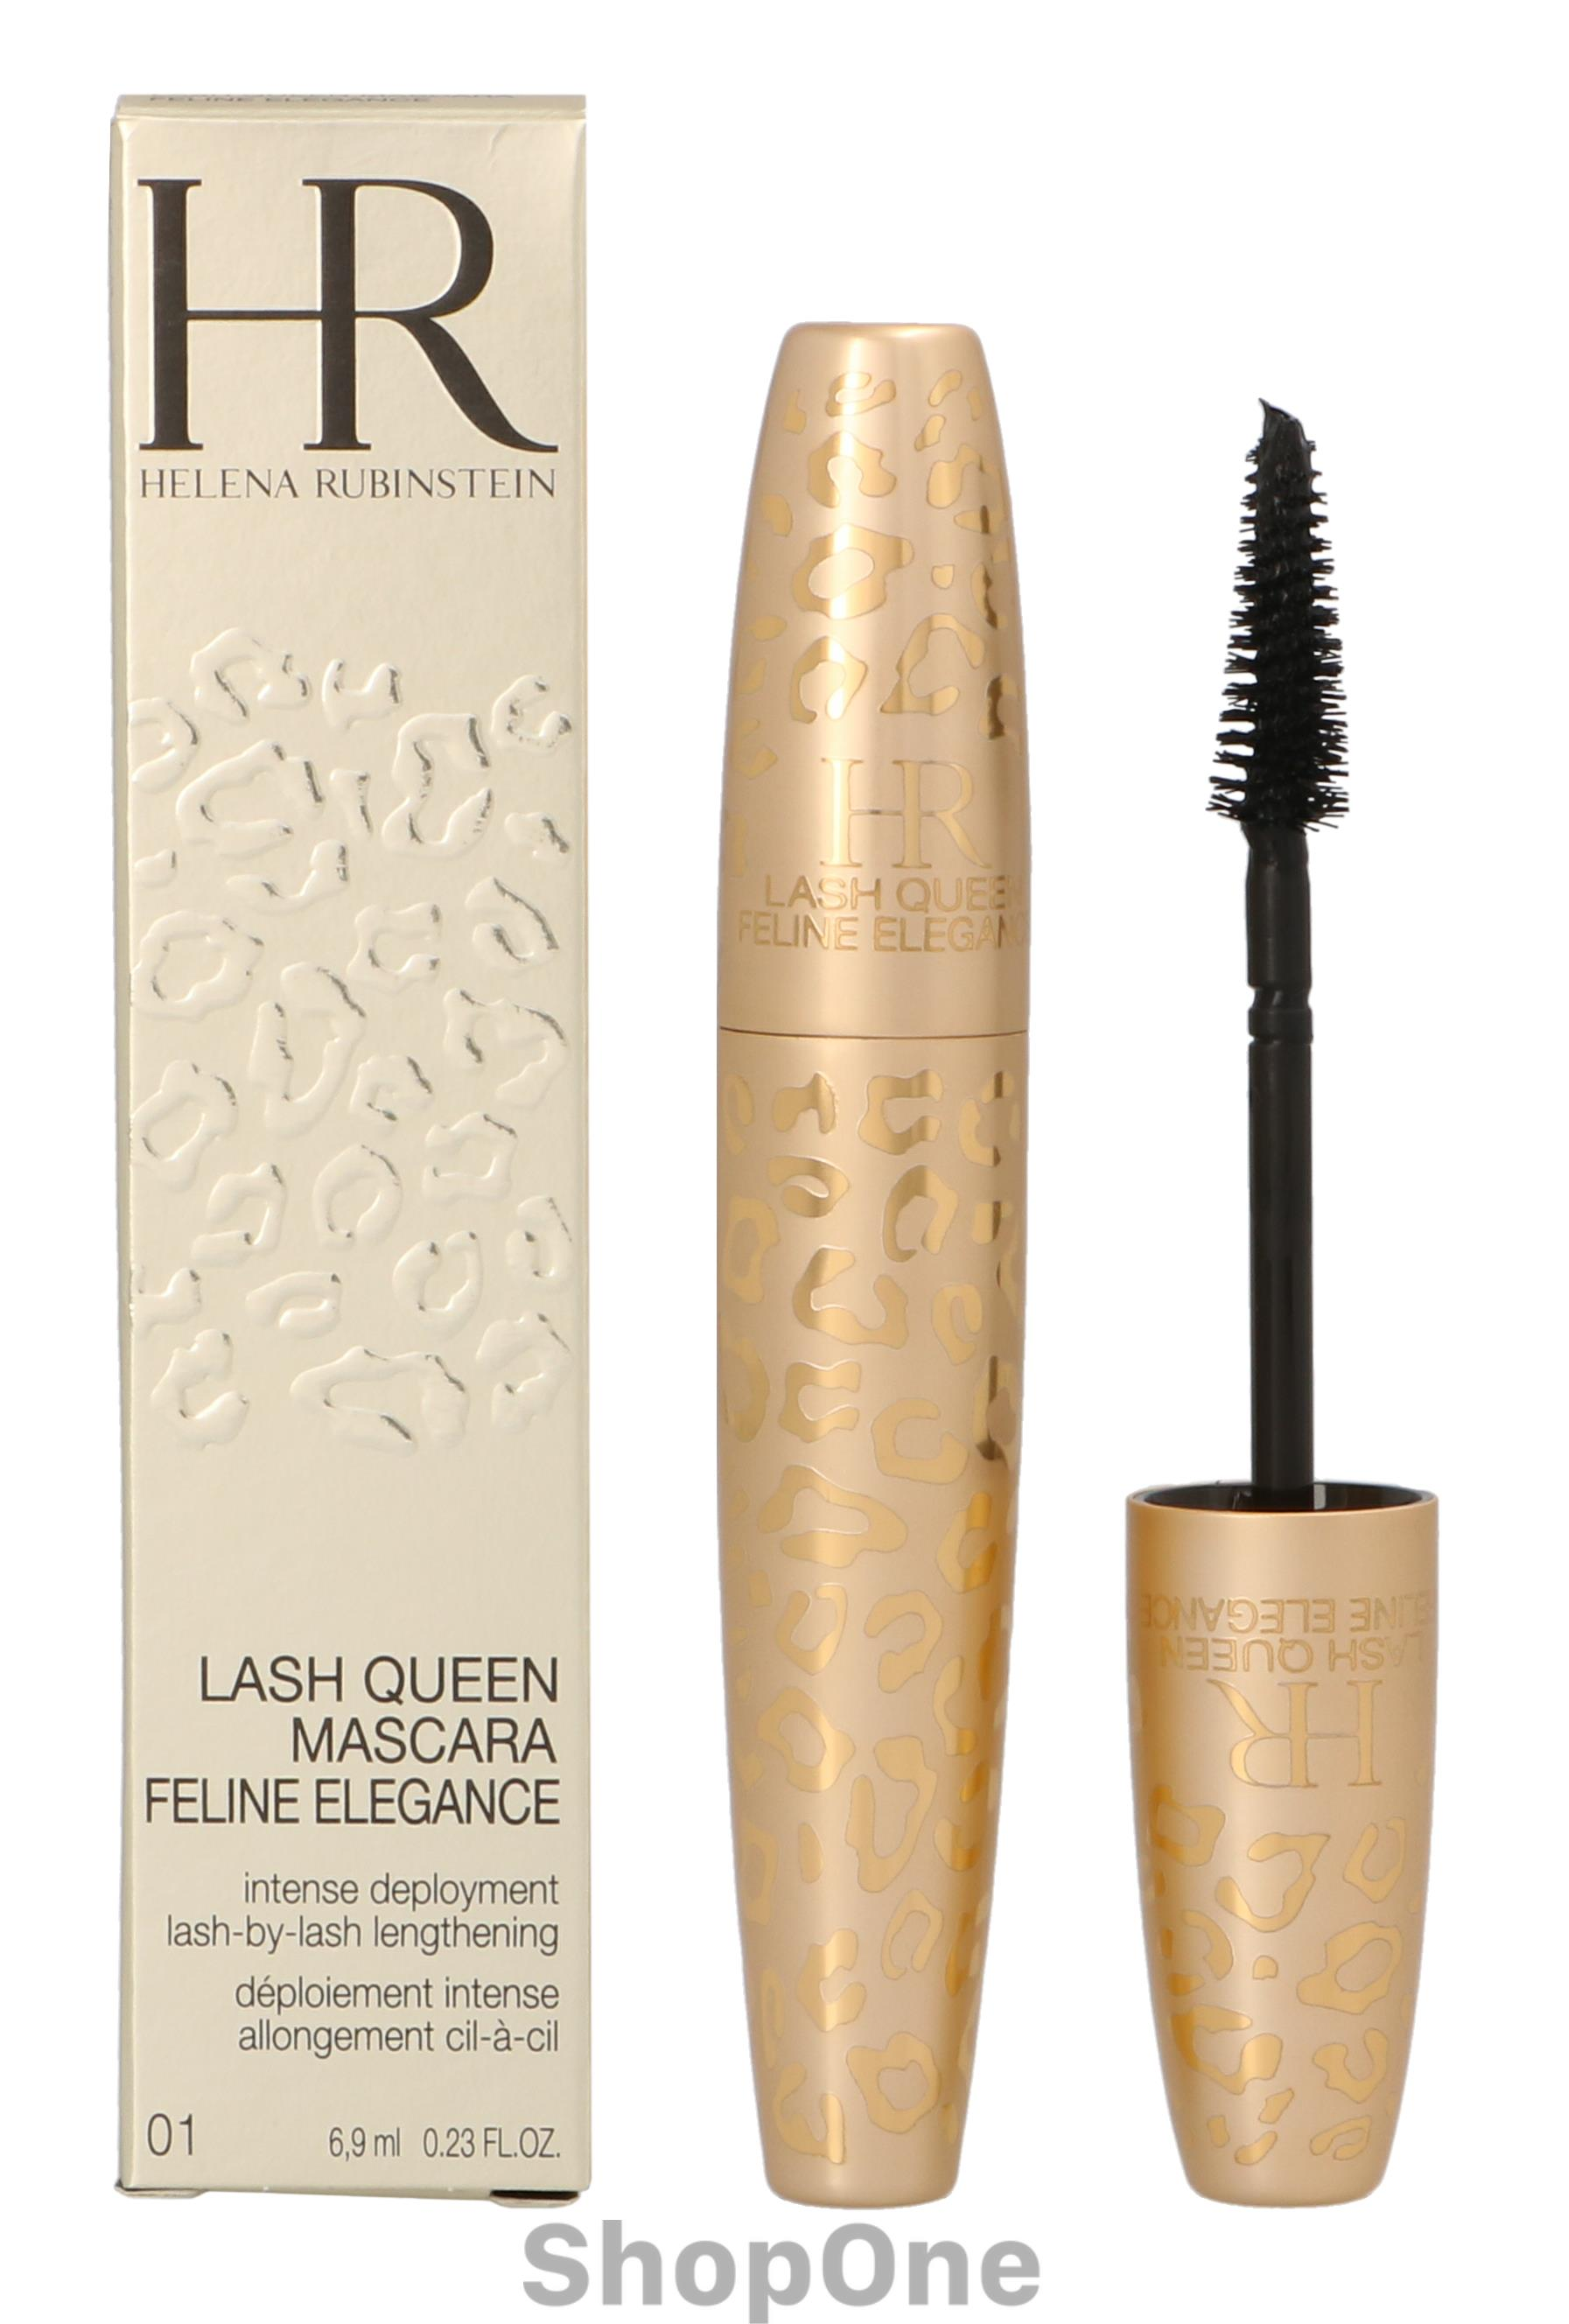 Image of   Hr Lash Queen Feline Elegance Mascara 7 ml fra Helena Rubinstein